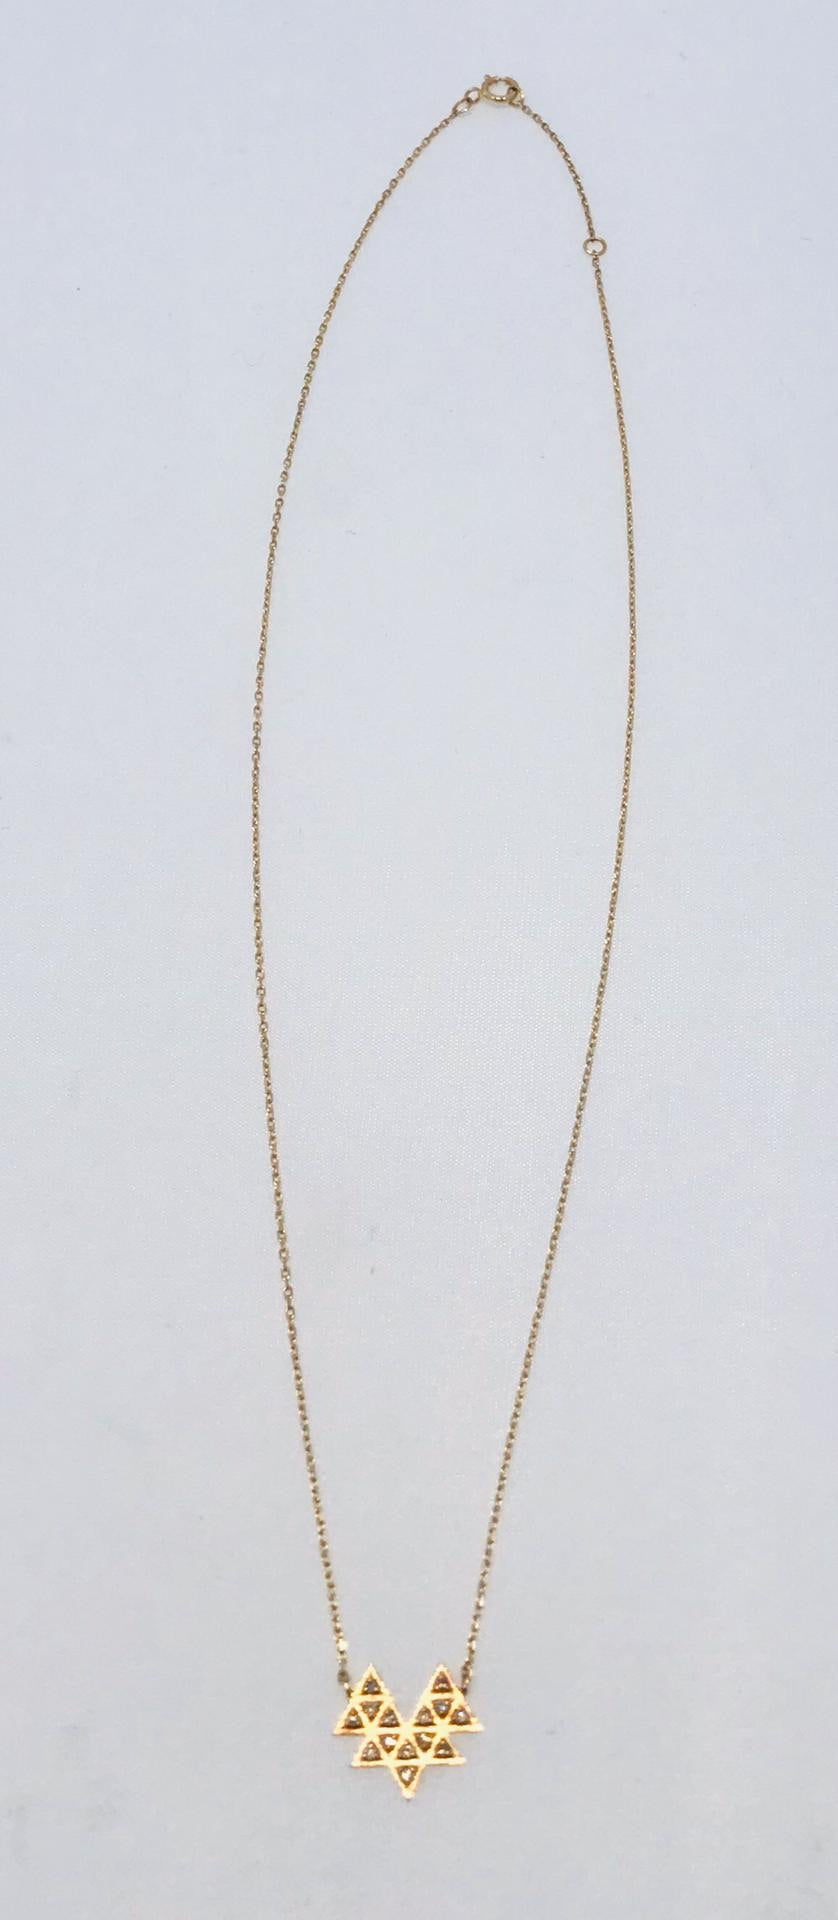 Céline Daoust - 14kt yellow gold fine necklace with 14 diamonds